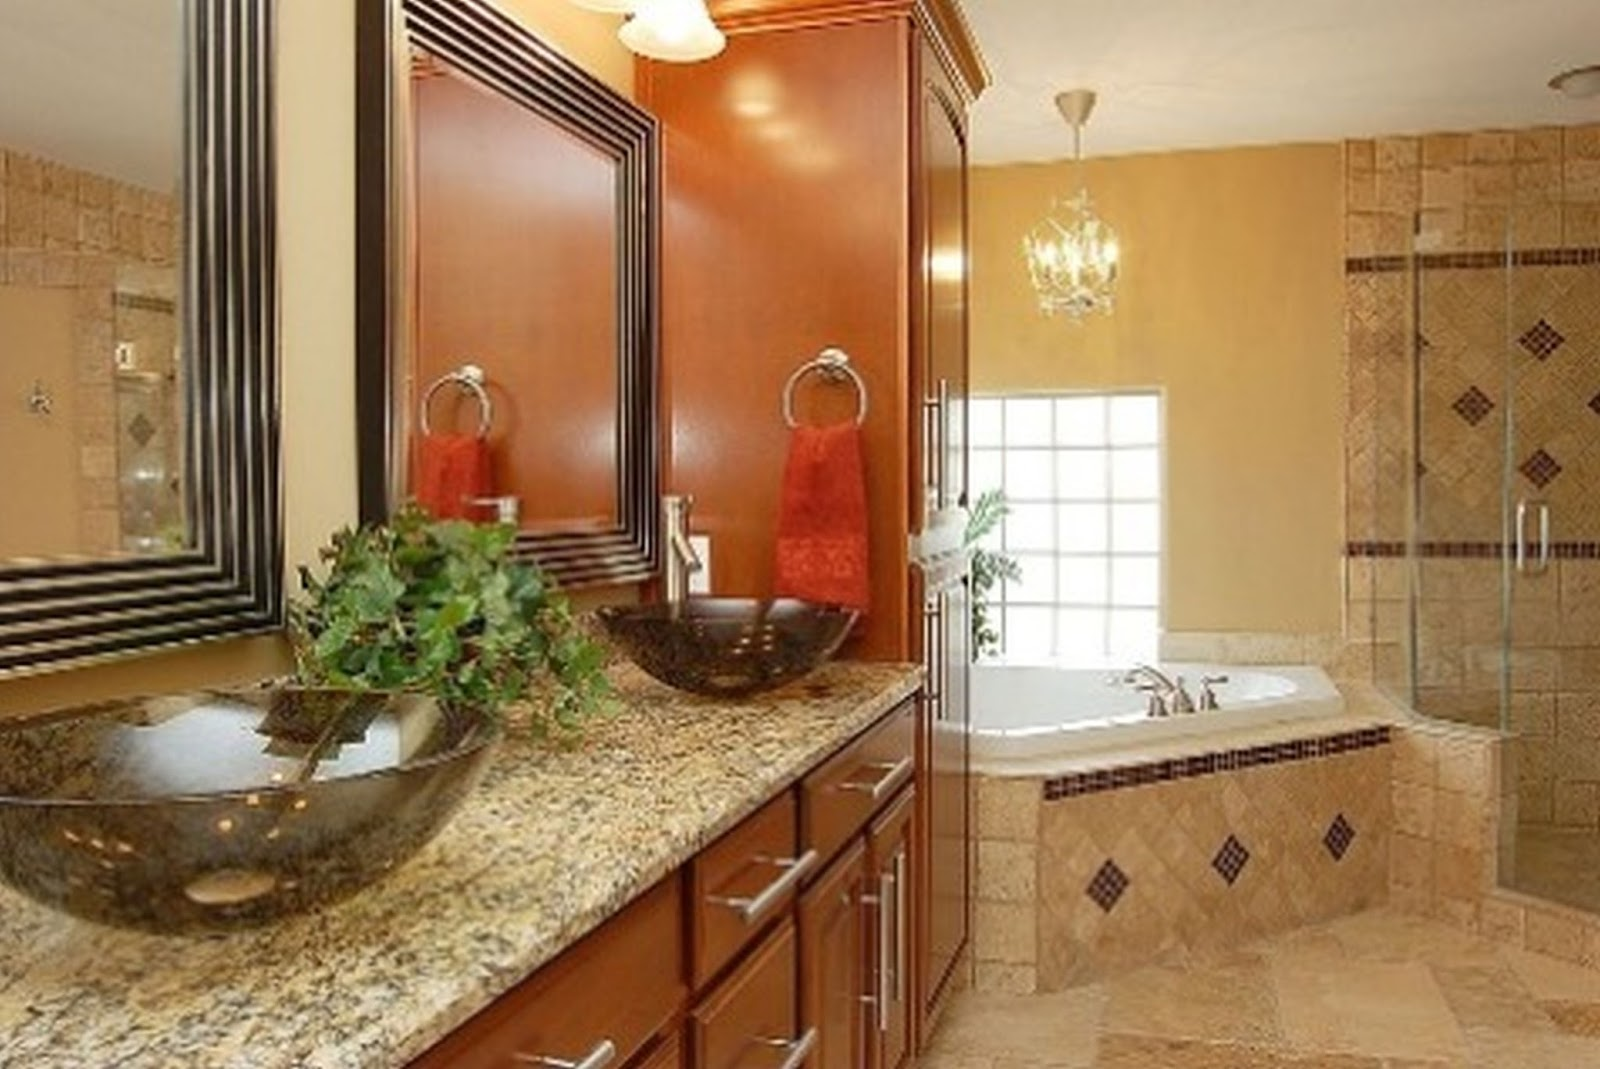 Foundation dezin decor elegant bathroom design for Bathroom ideas elegant